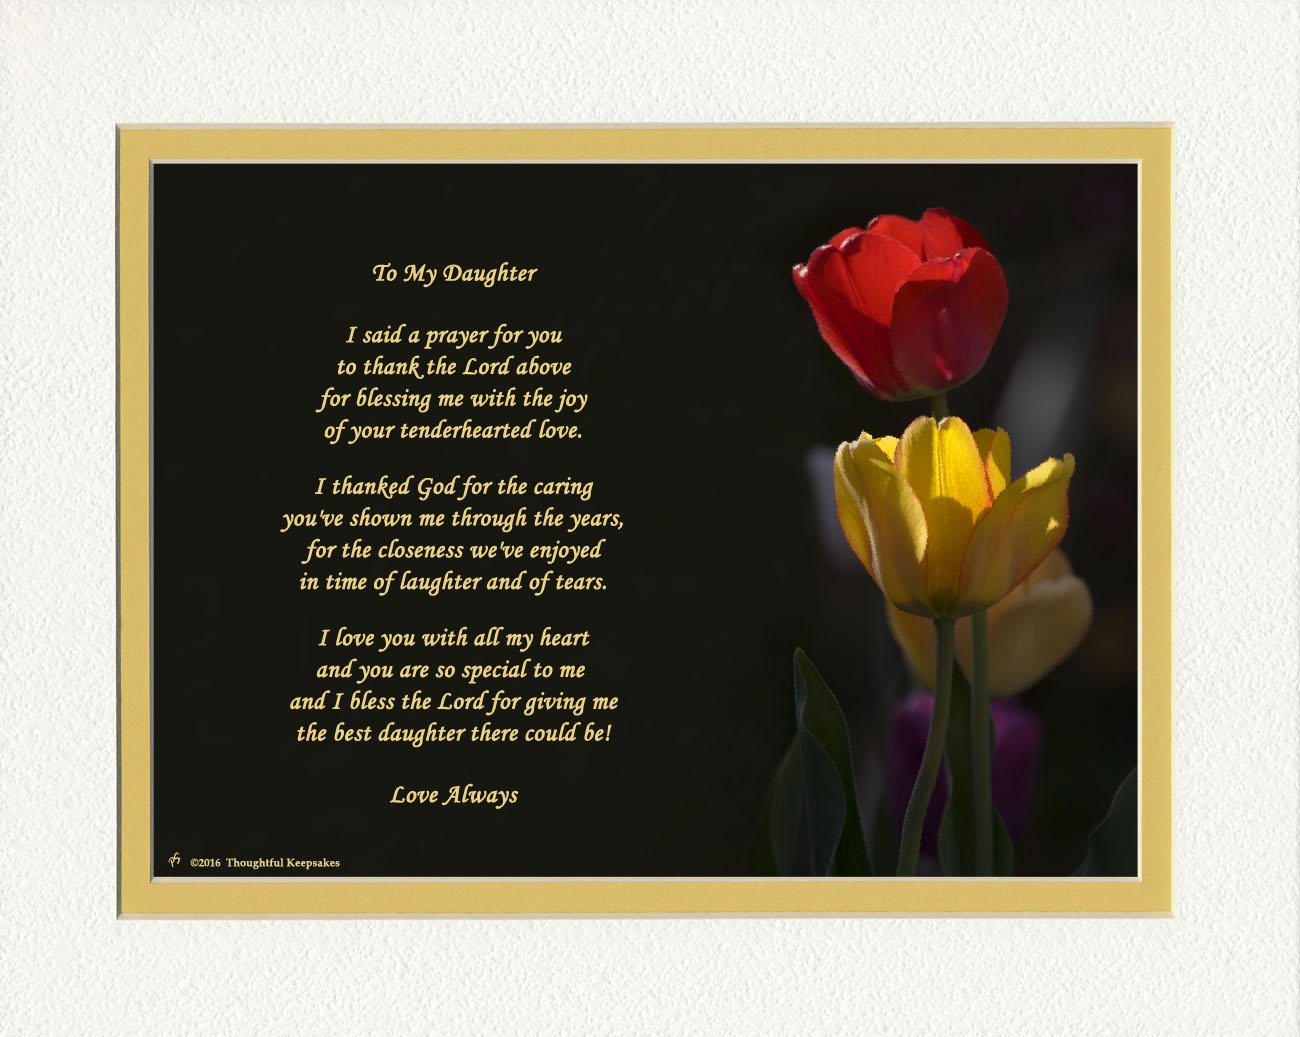 Daughter Gift with ''Thank You Prayer for Best Daughter'' Poem. Tulips Photo, 8x10 Double Matted. Special Birthday or Christmas Gift for Daughter.